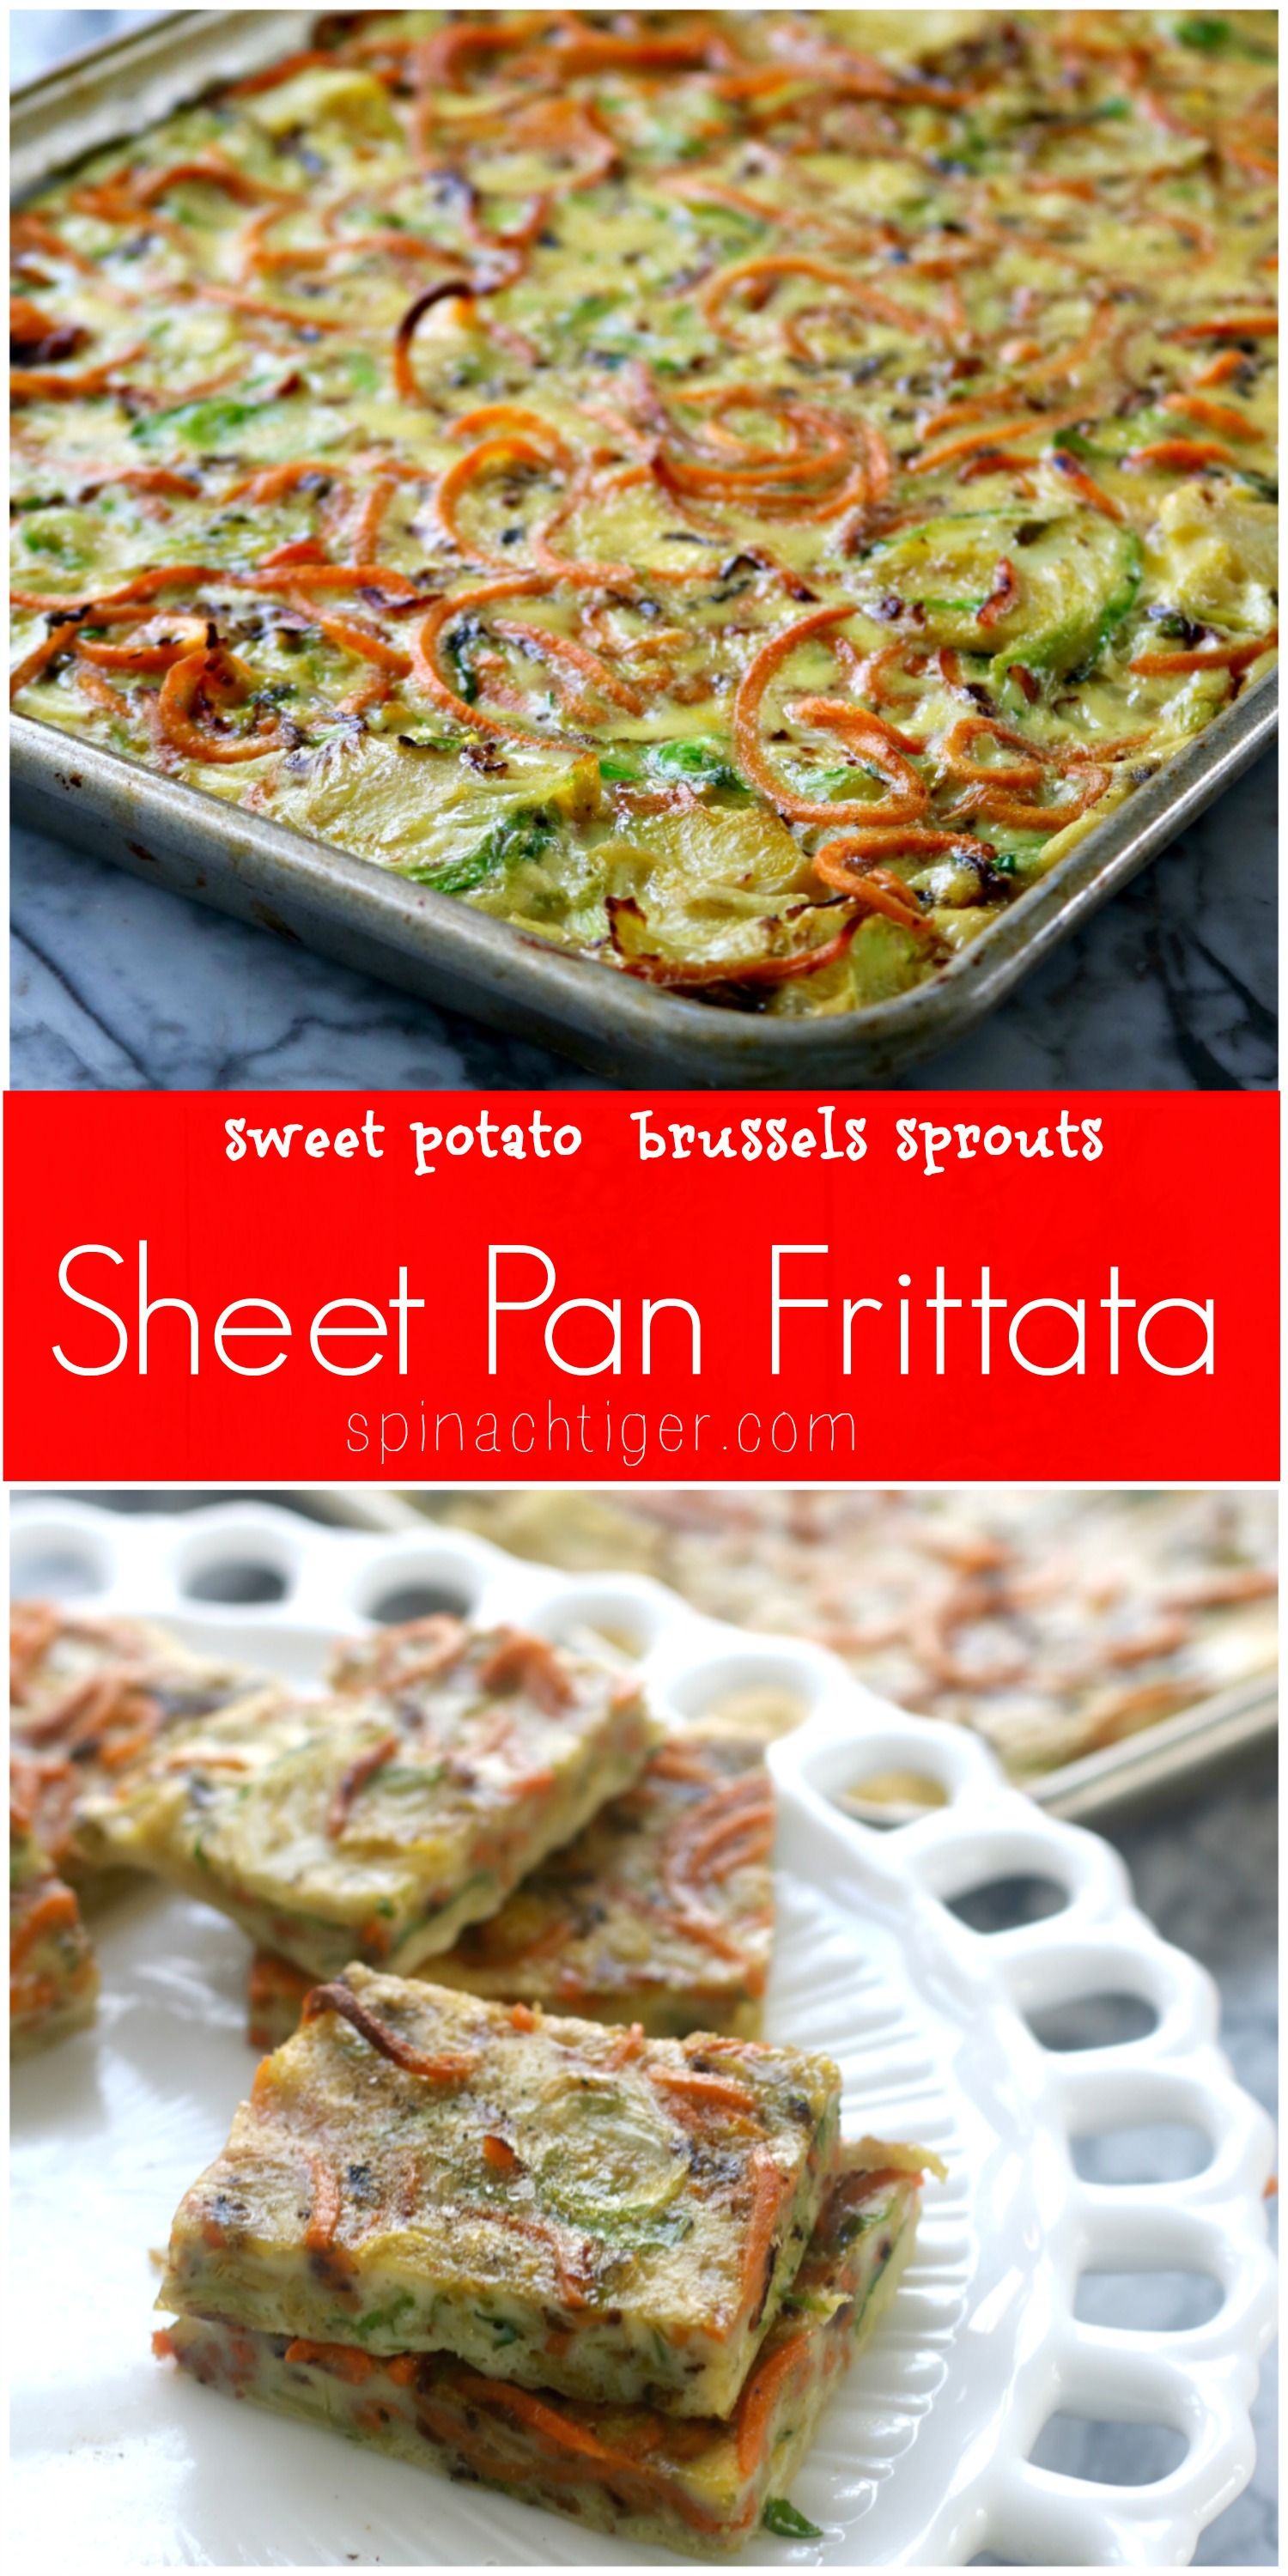 Potluck Sheet pan frittata, a vegetarian frittata recipe from Spinach Tiger